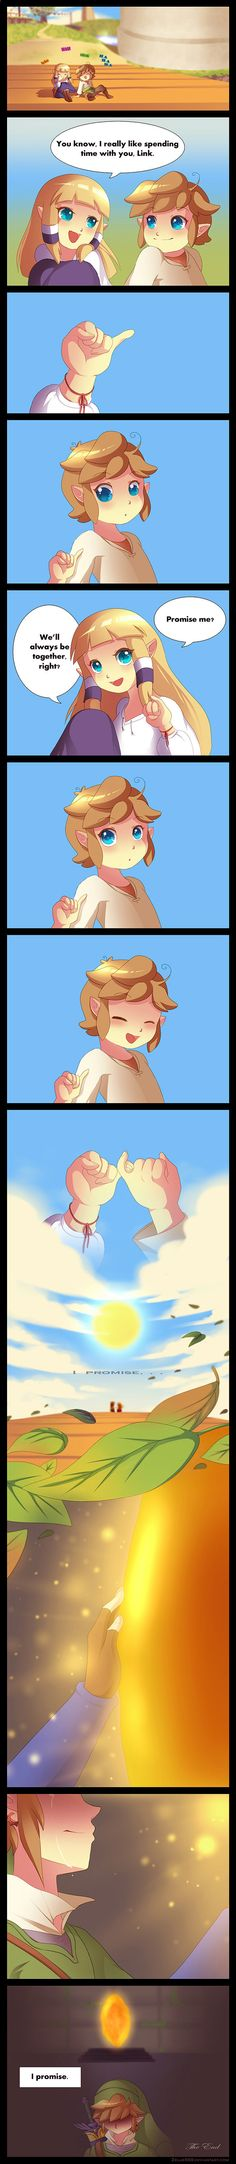 Zelda Skyward Sword: I promise by *Zellie669 on deviantART SO SWEET AND SAD!!